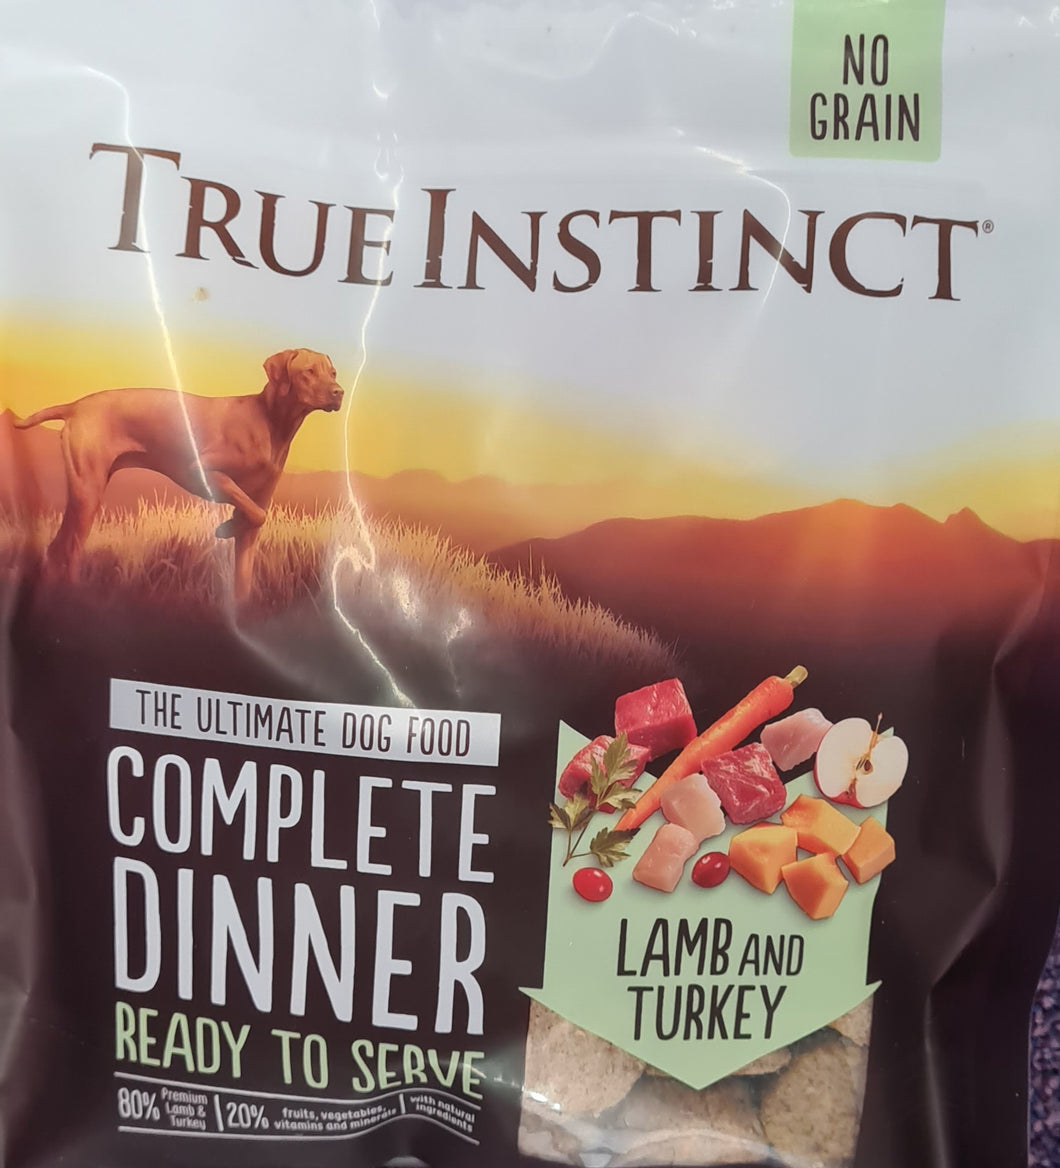 True Instinct Freeze Dried Complete Dinner. Lamb & Turkey  120g - Food for dogs, cats and other pets online | Northampton Raw Dog Food!